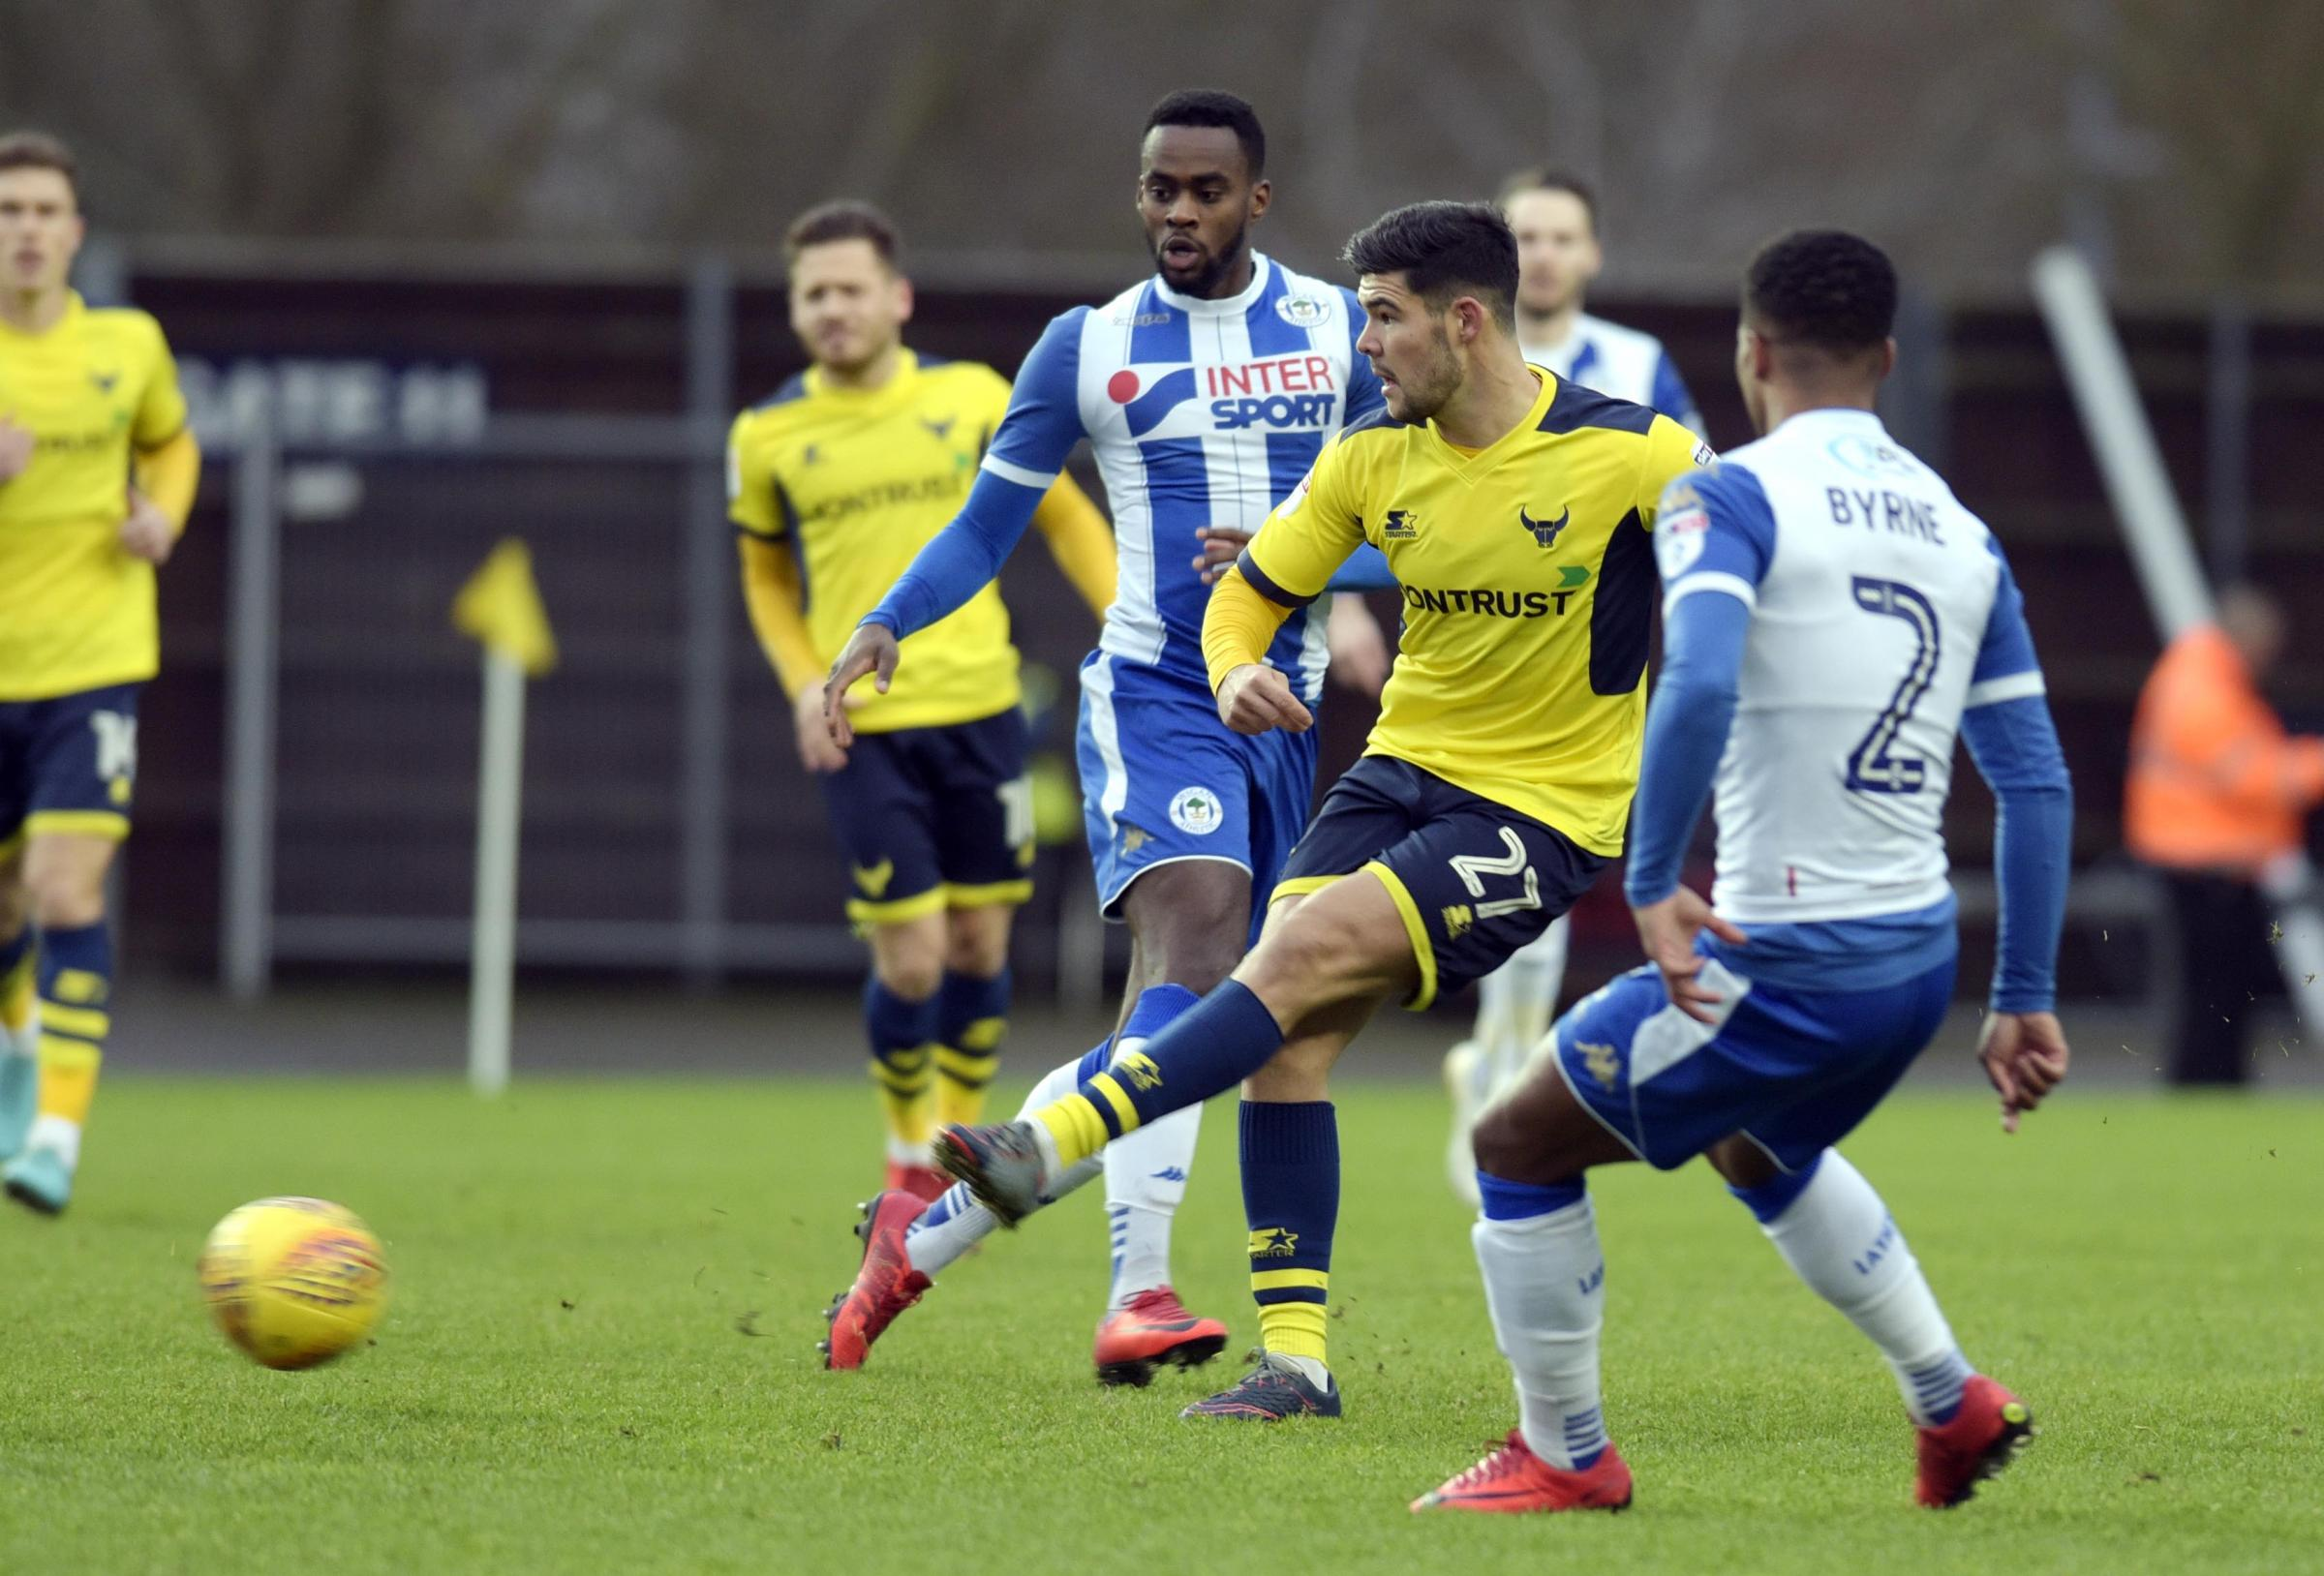 Alex Mowatt looks for an Oxford United teammate in the reverse fixture against Wigan Athletic last month, which the visitors won 7-0  Picture: David Fleming